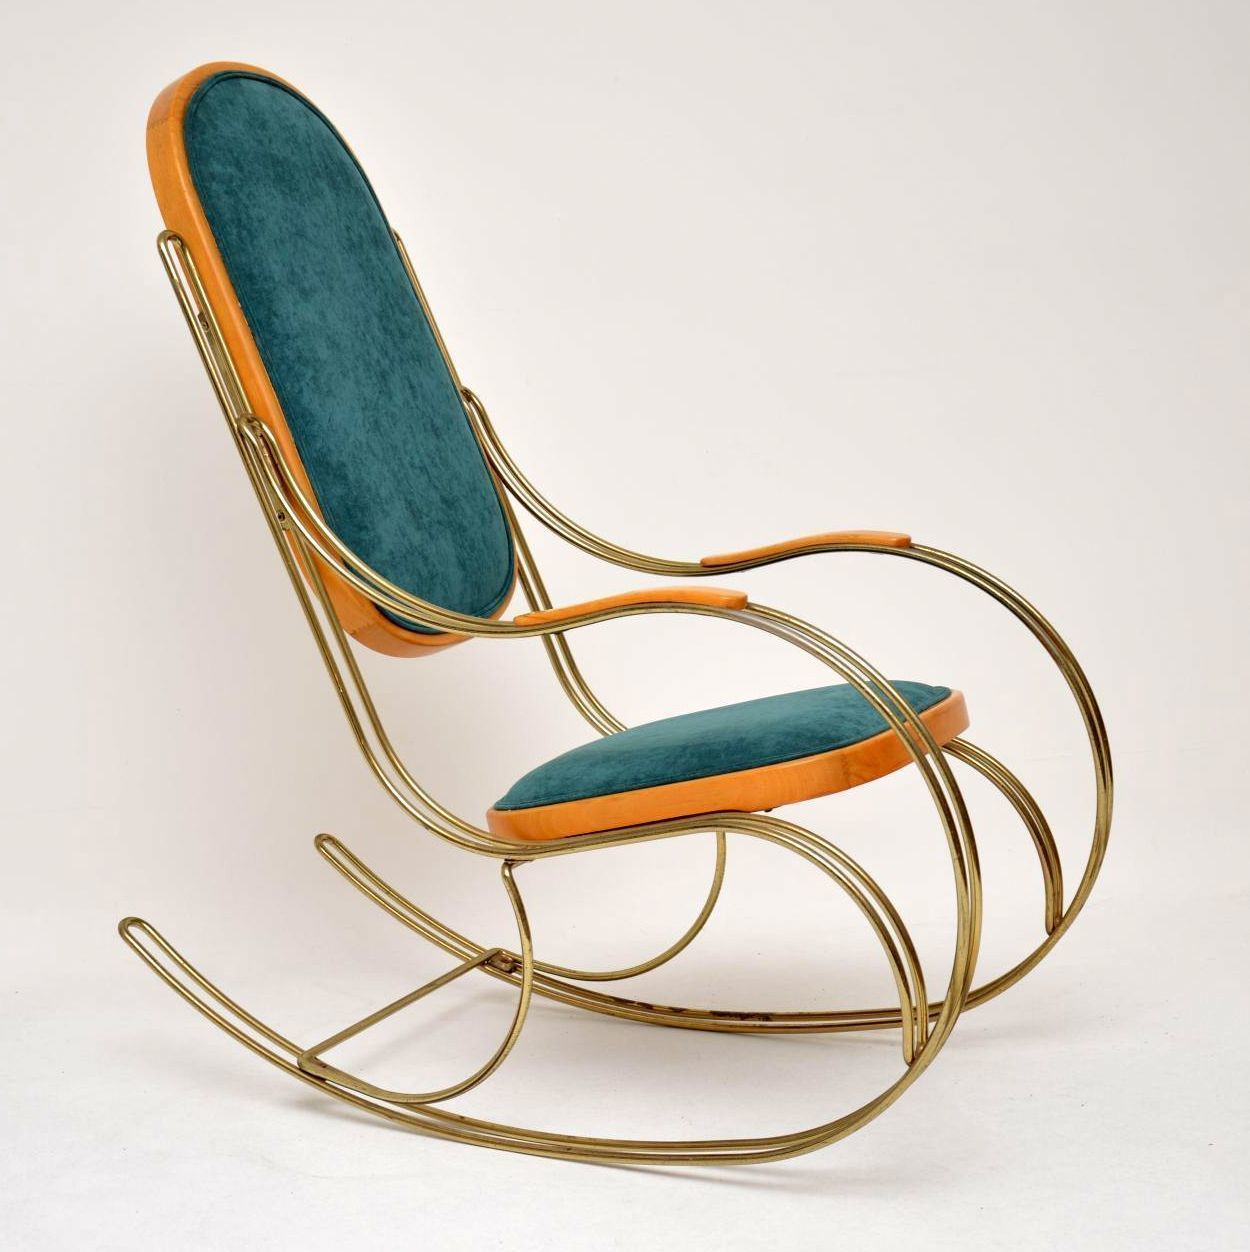 Magnificent 1970S Vintage Italian Brass Rocking Chair Gmtry Best Dining Table And Chair Ideas Images Gmtryco